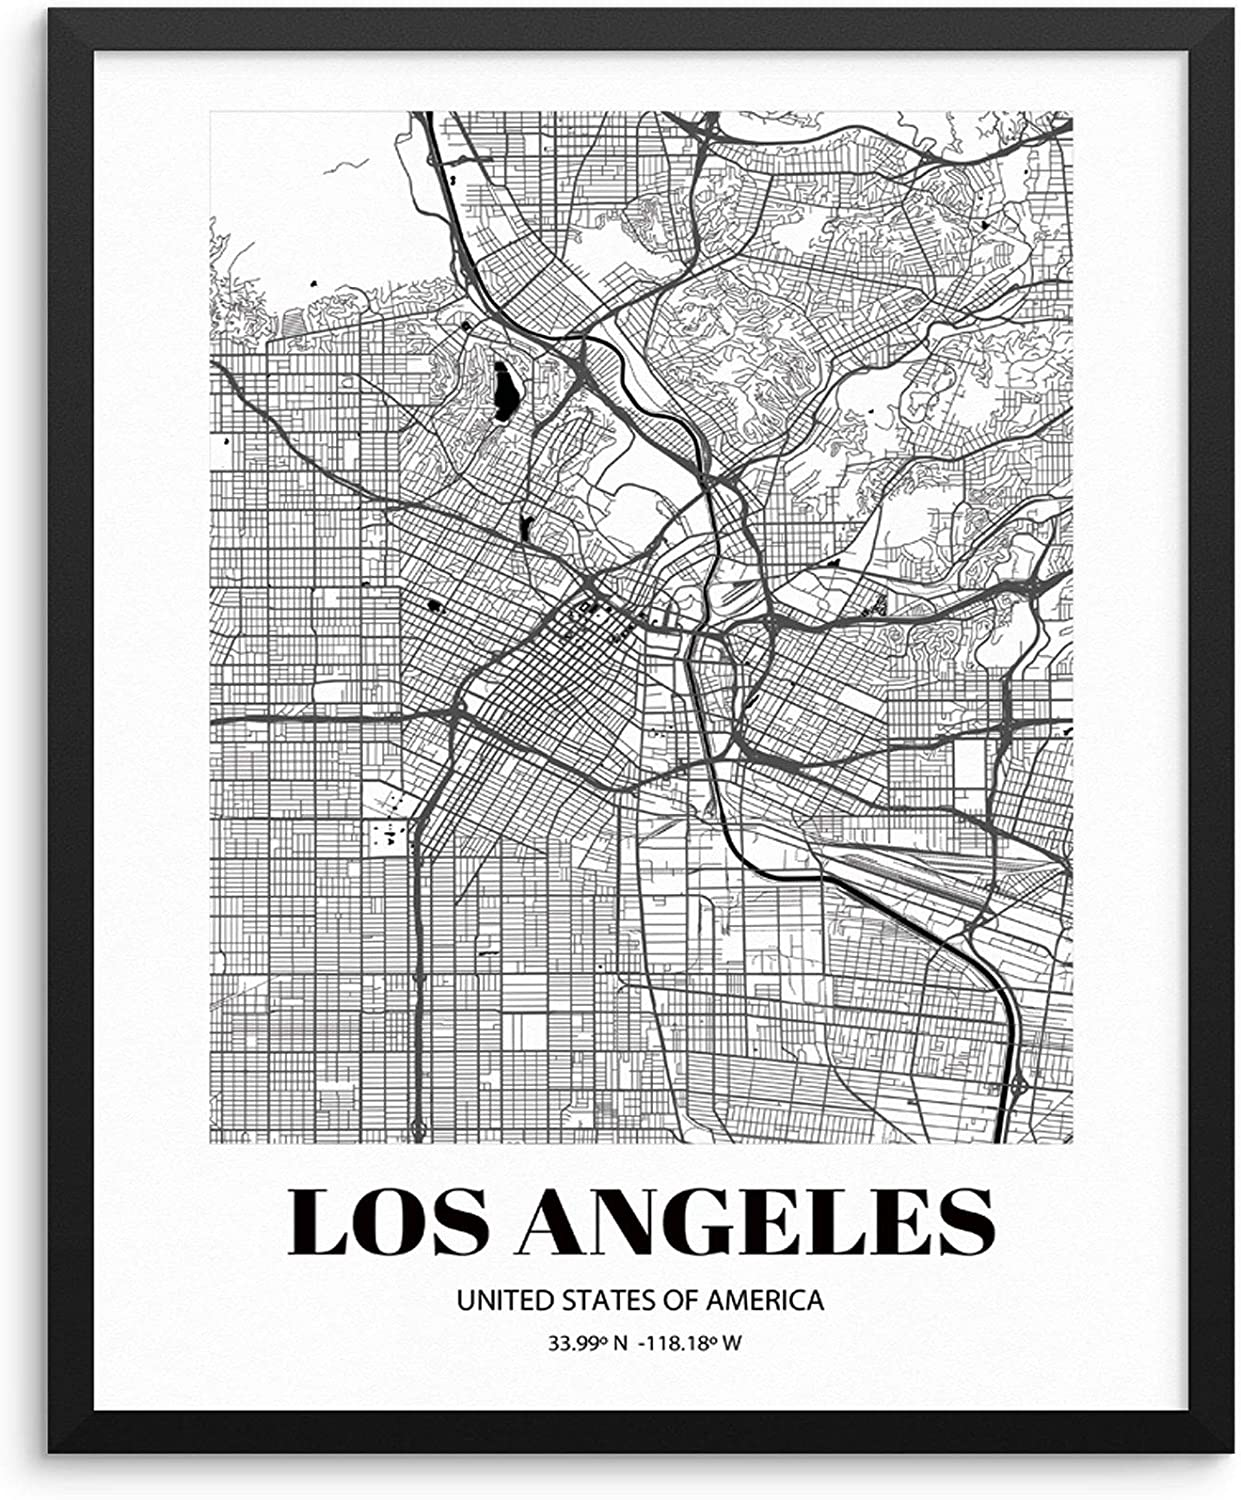 Los Angeles City Grid Map Art Print Cityscape Road Map Wall Poster 20